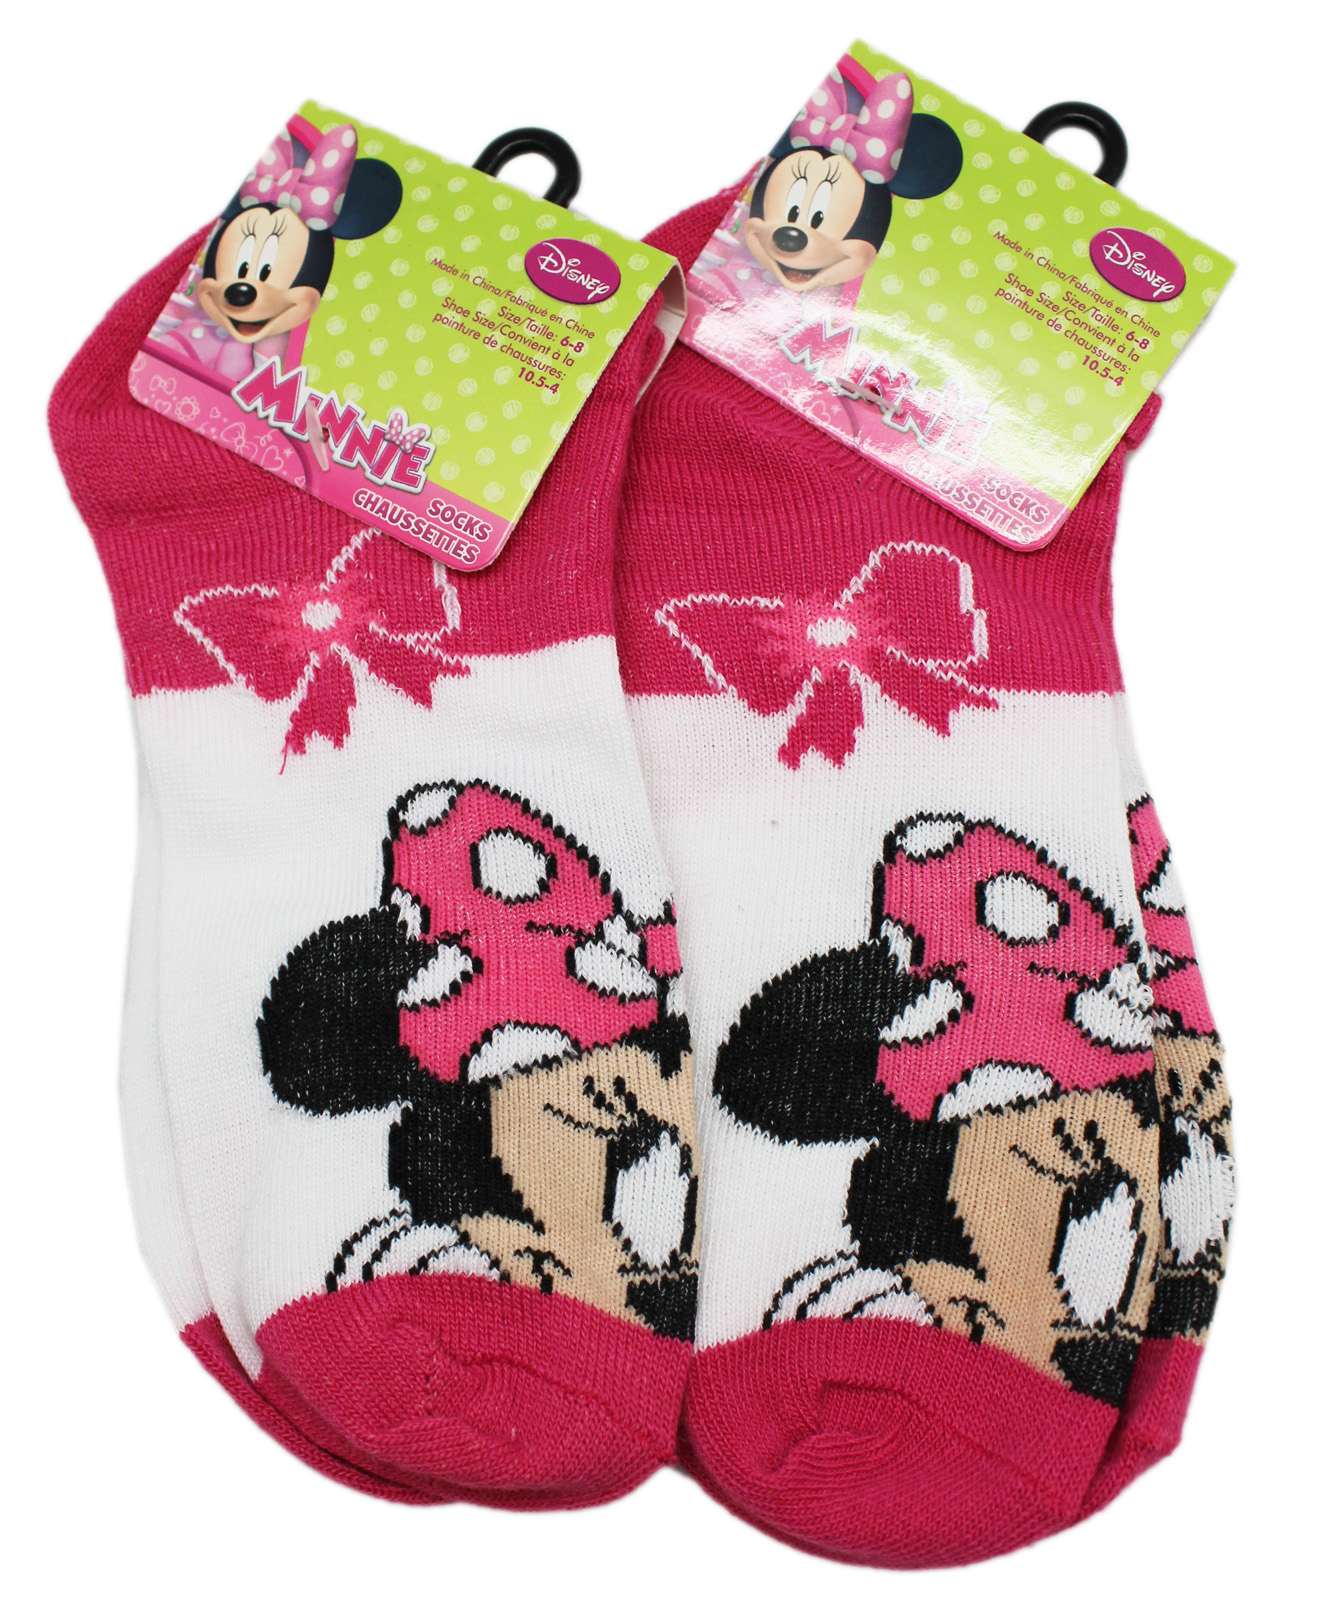 Disney's White and Hot Pink Kids Sock Set (2 Pairs, Size 6-8)